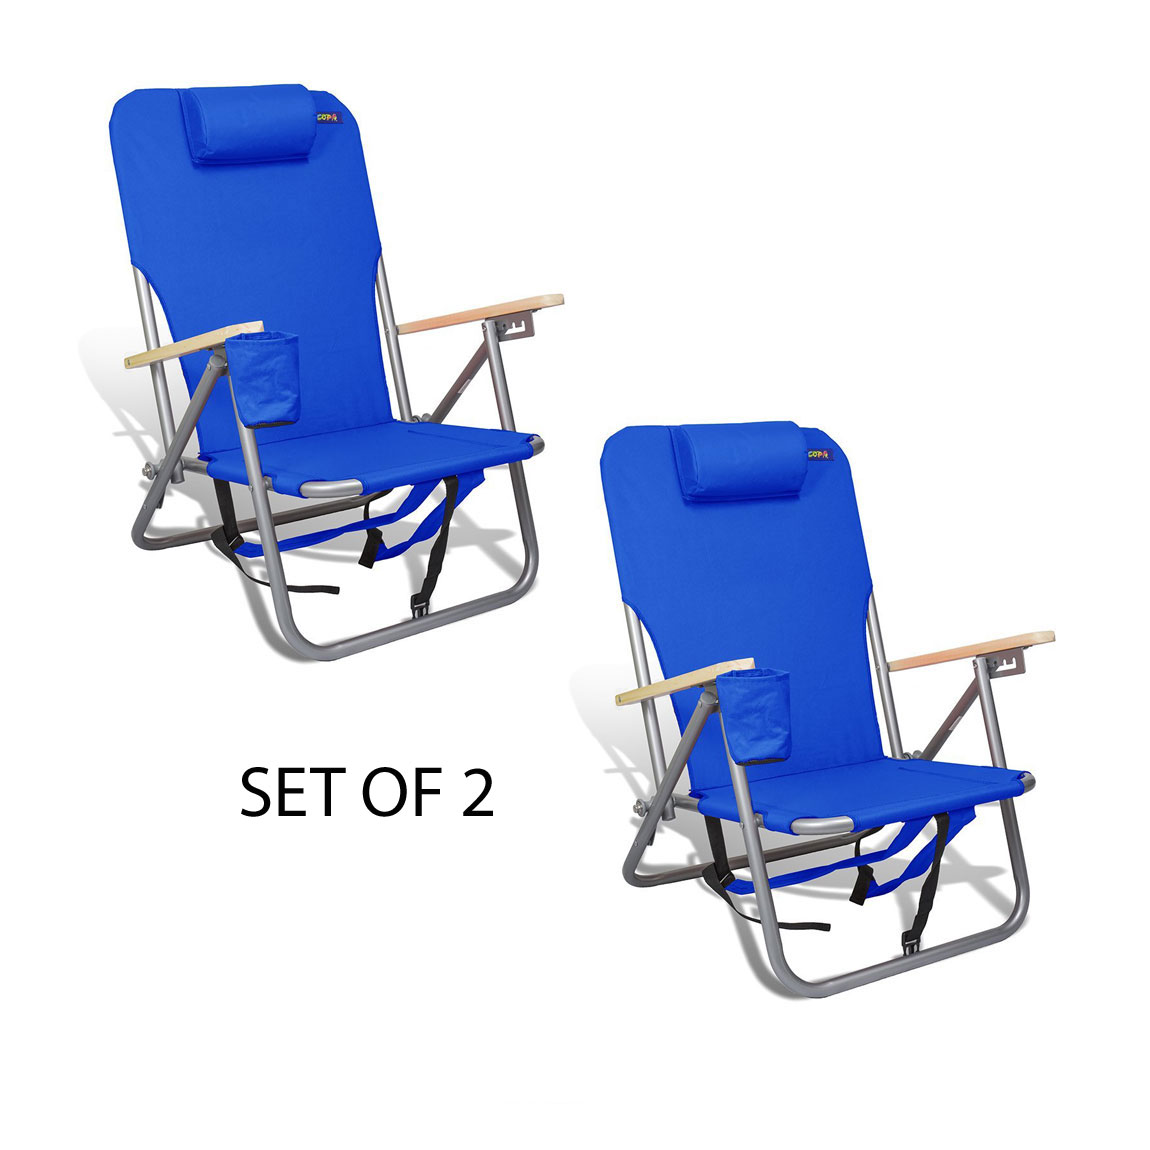 Copa 4 position Steel Backpack Chair w Drink Holder & Storage Pouch - Set of 2